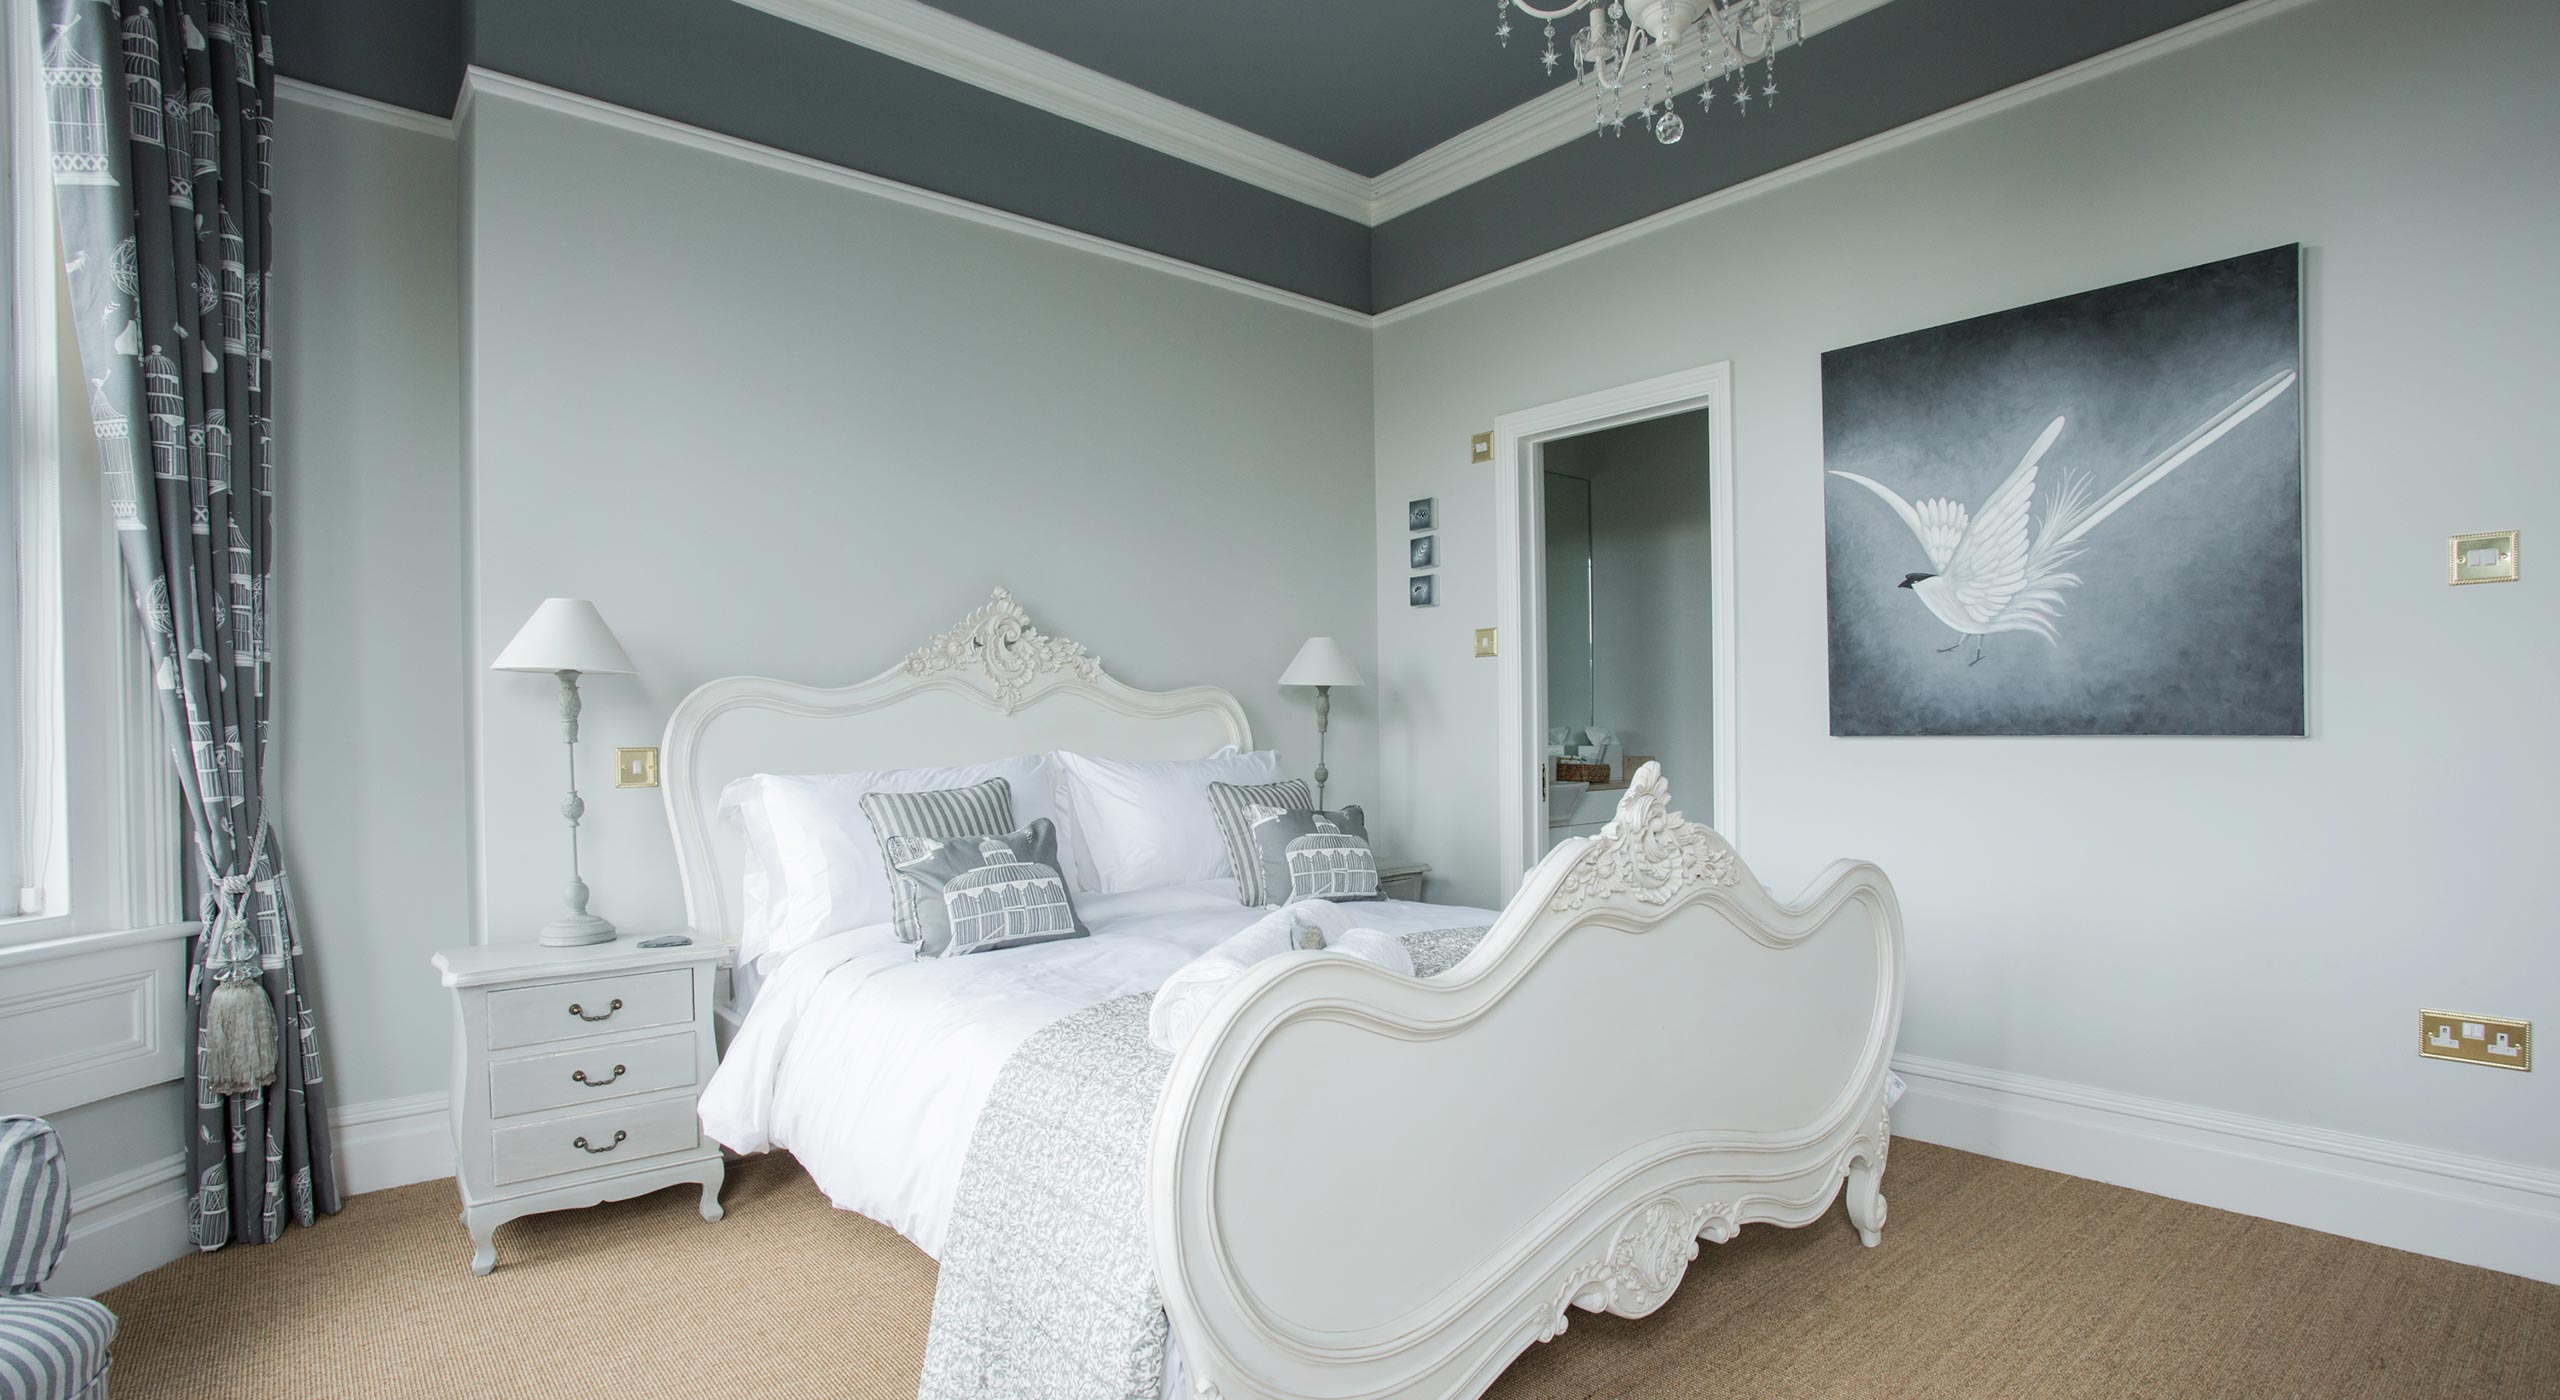 Deluxe French King 170 To 190 Per Night